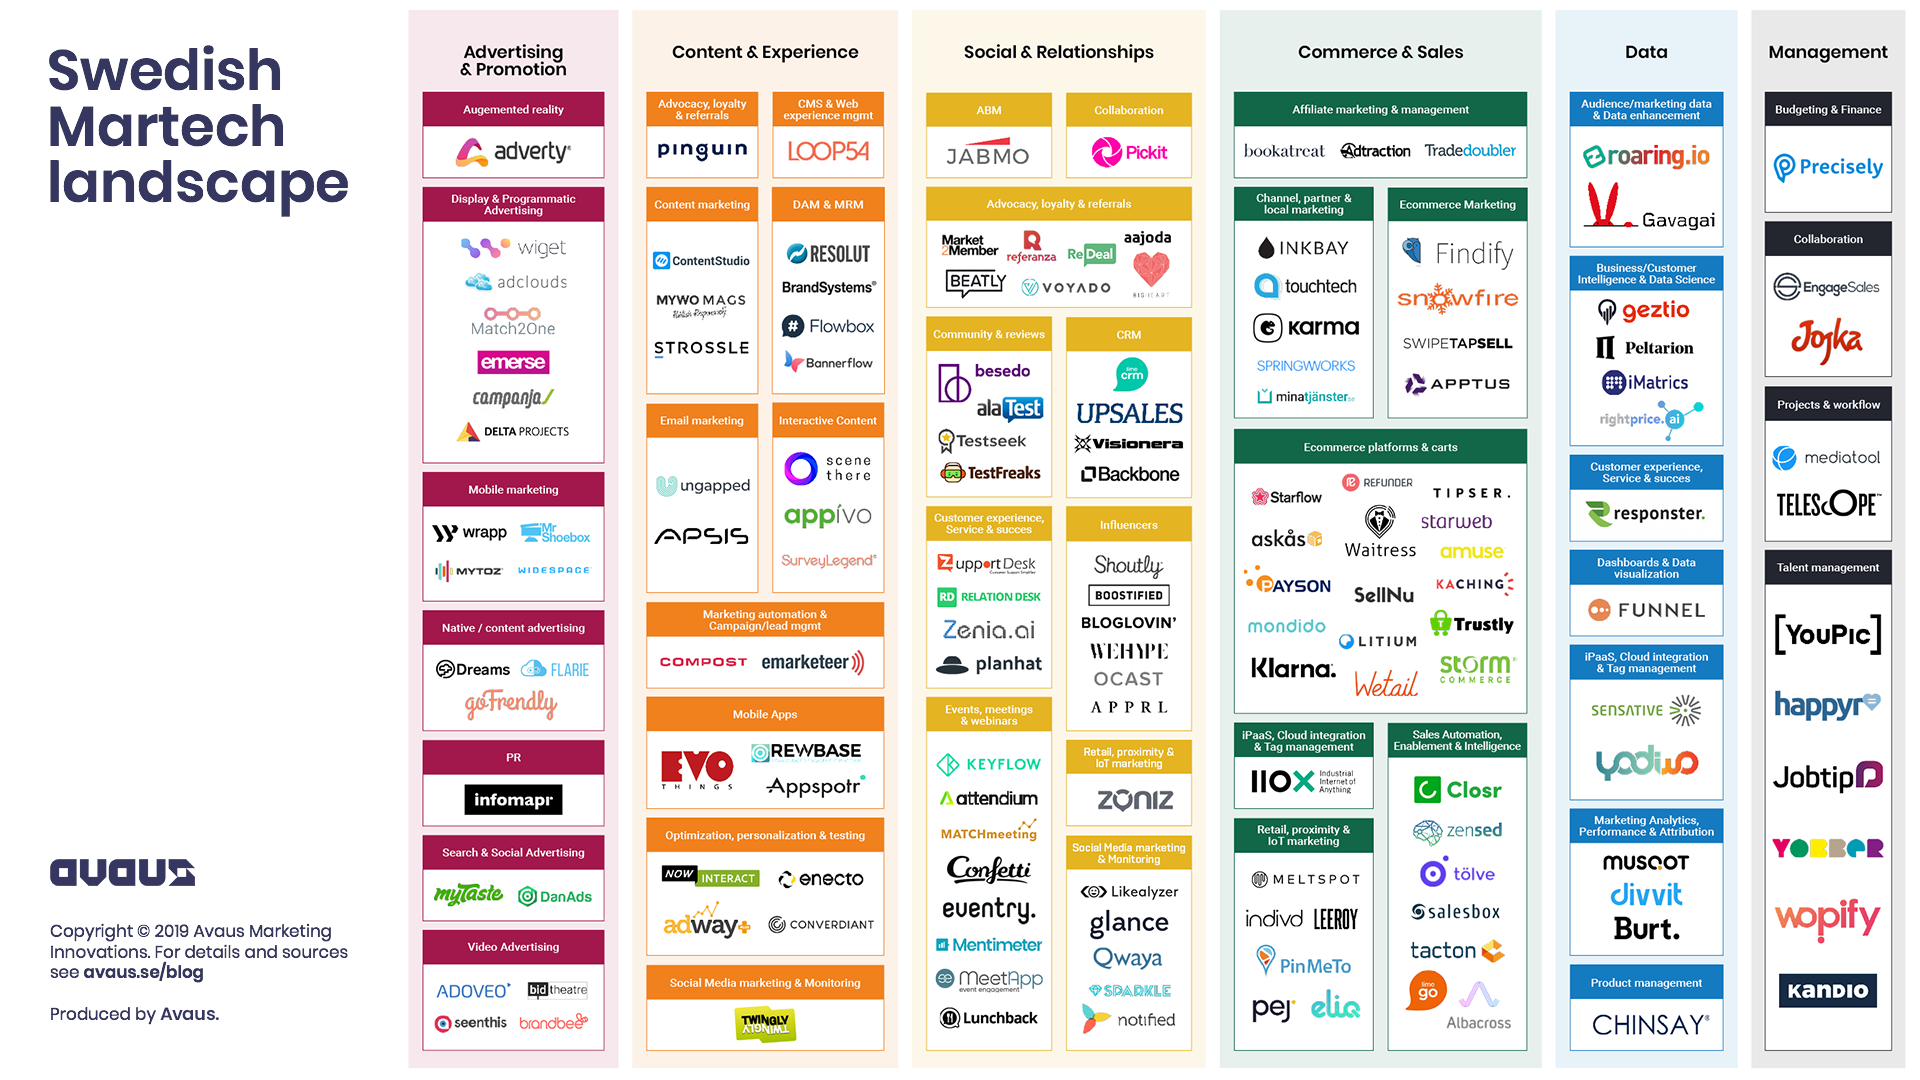 Swedish MarTech Landscape revealed